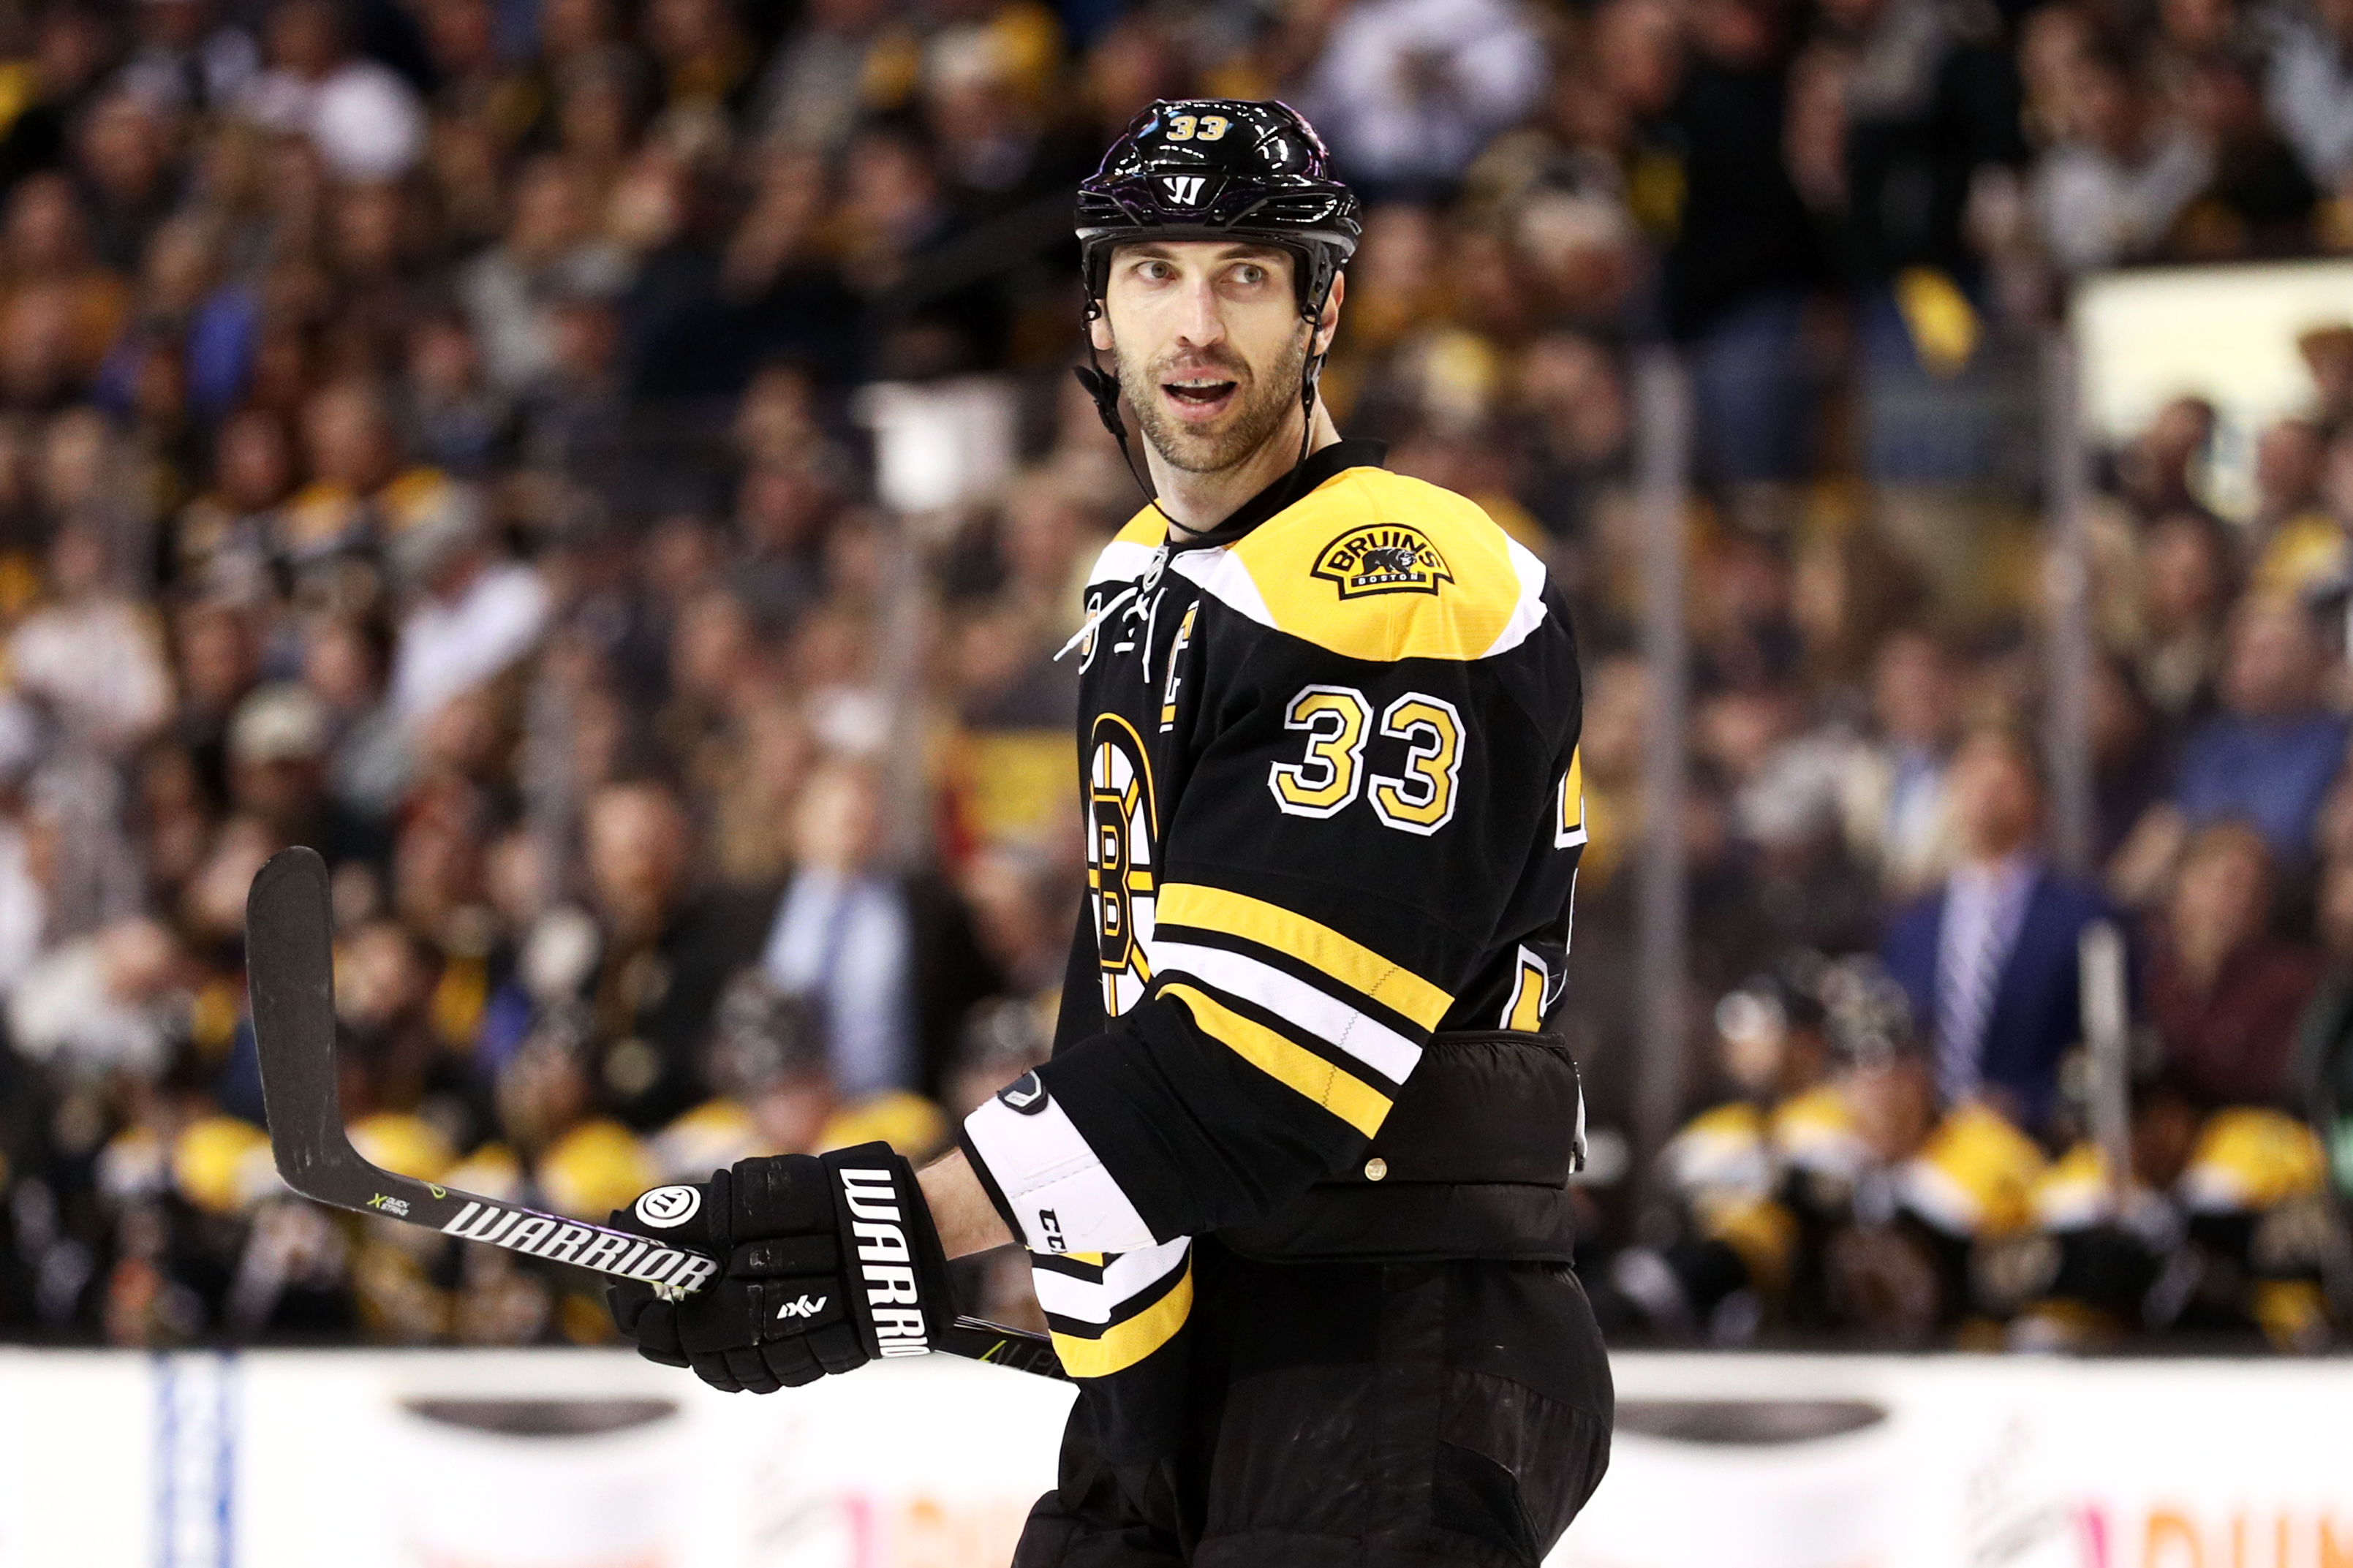 After A Captains Practice In Early September Chara Made It Clearly Known That Going Into The Season He Had Every Intention Of Continuing His Career